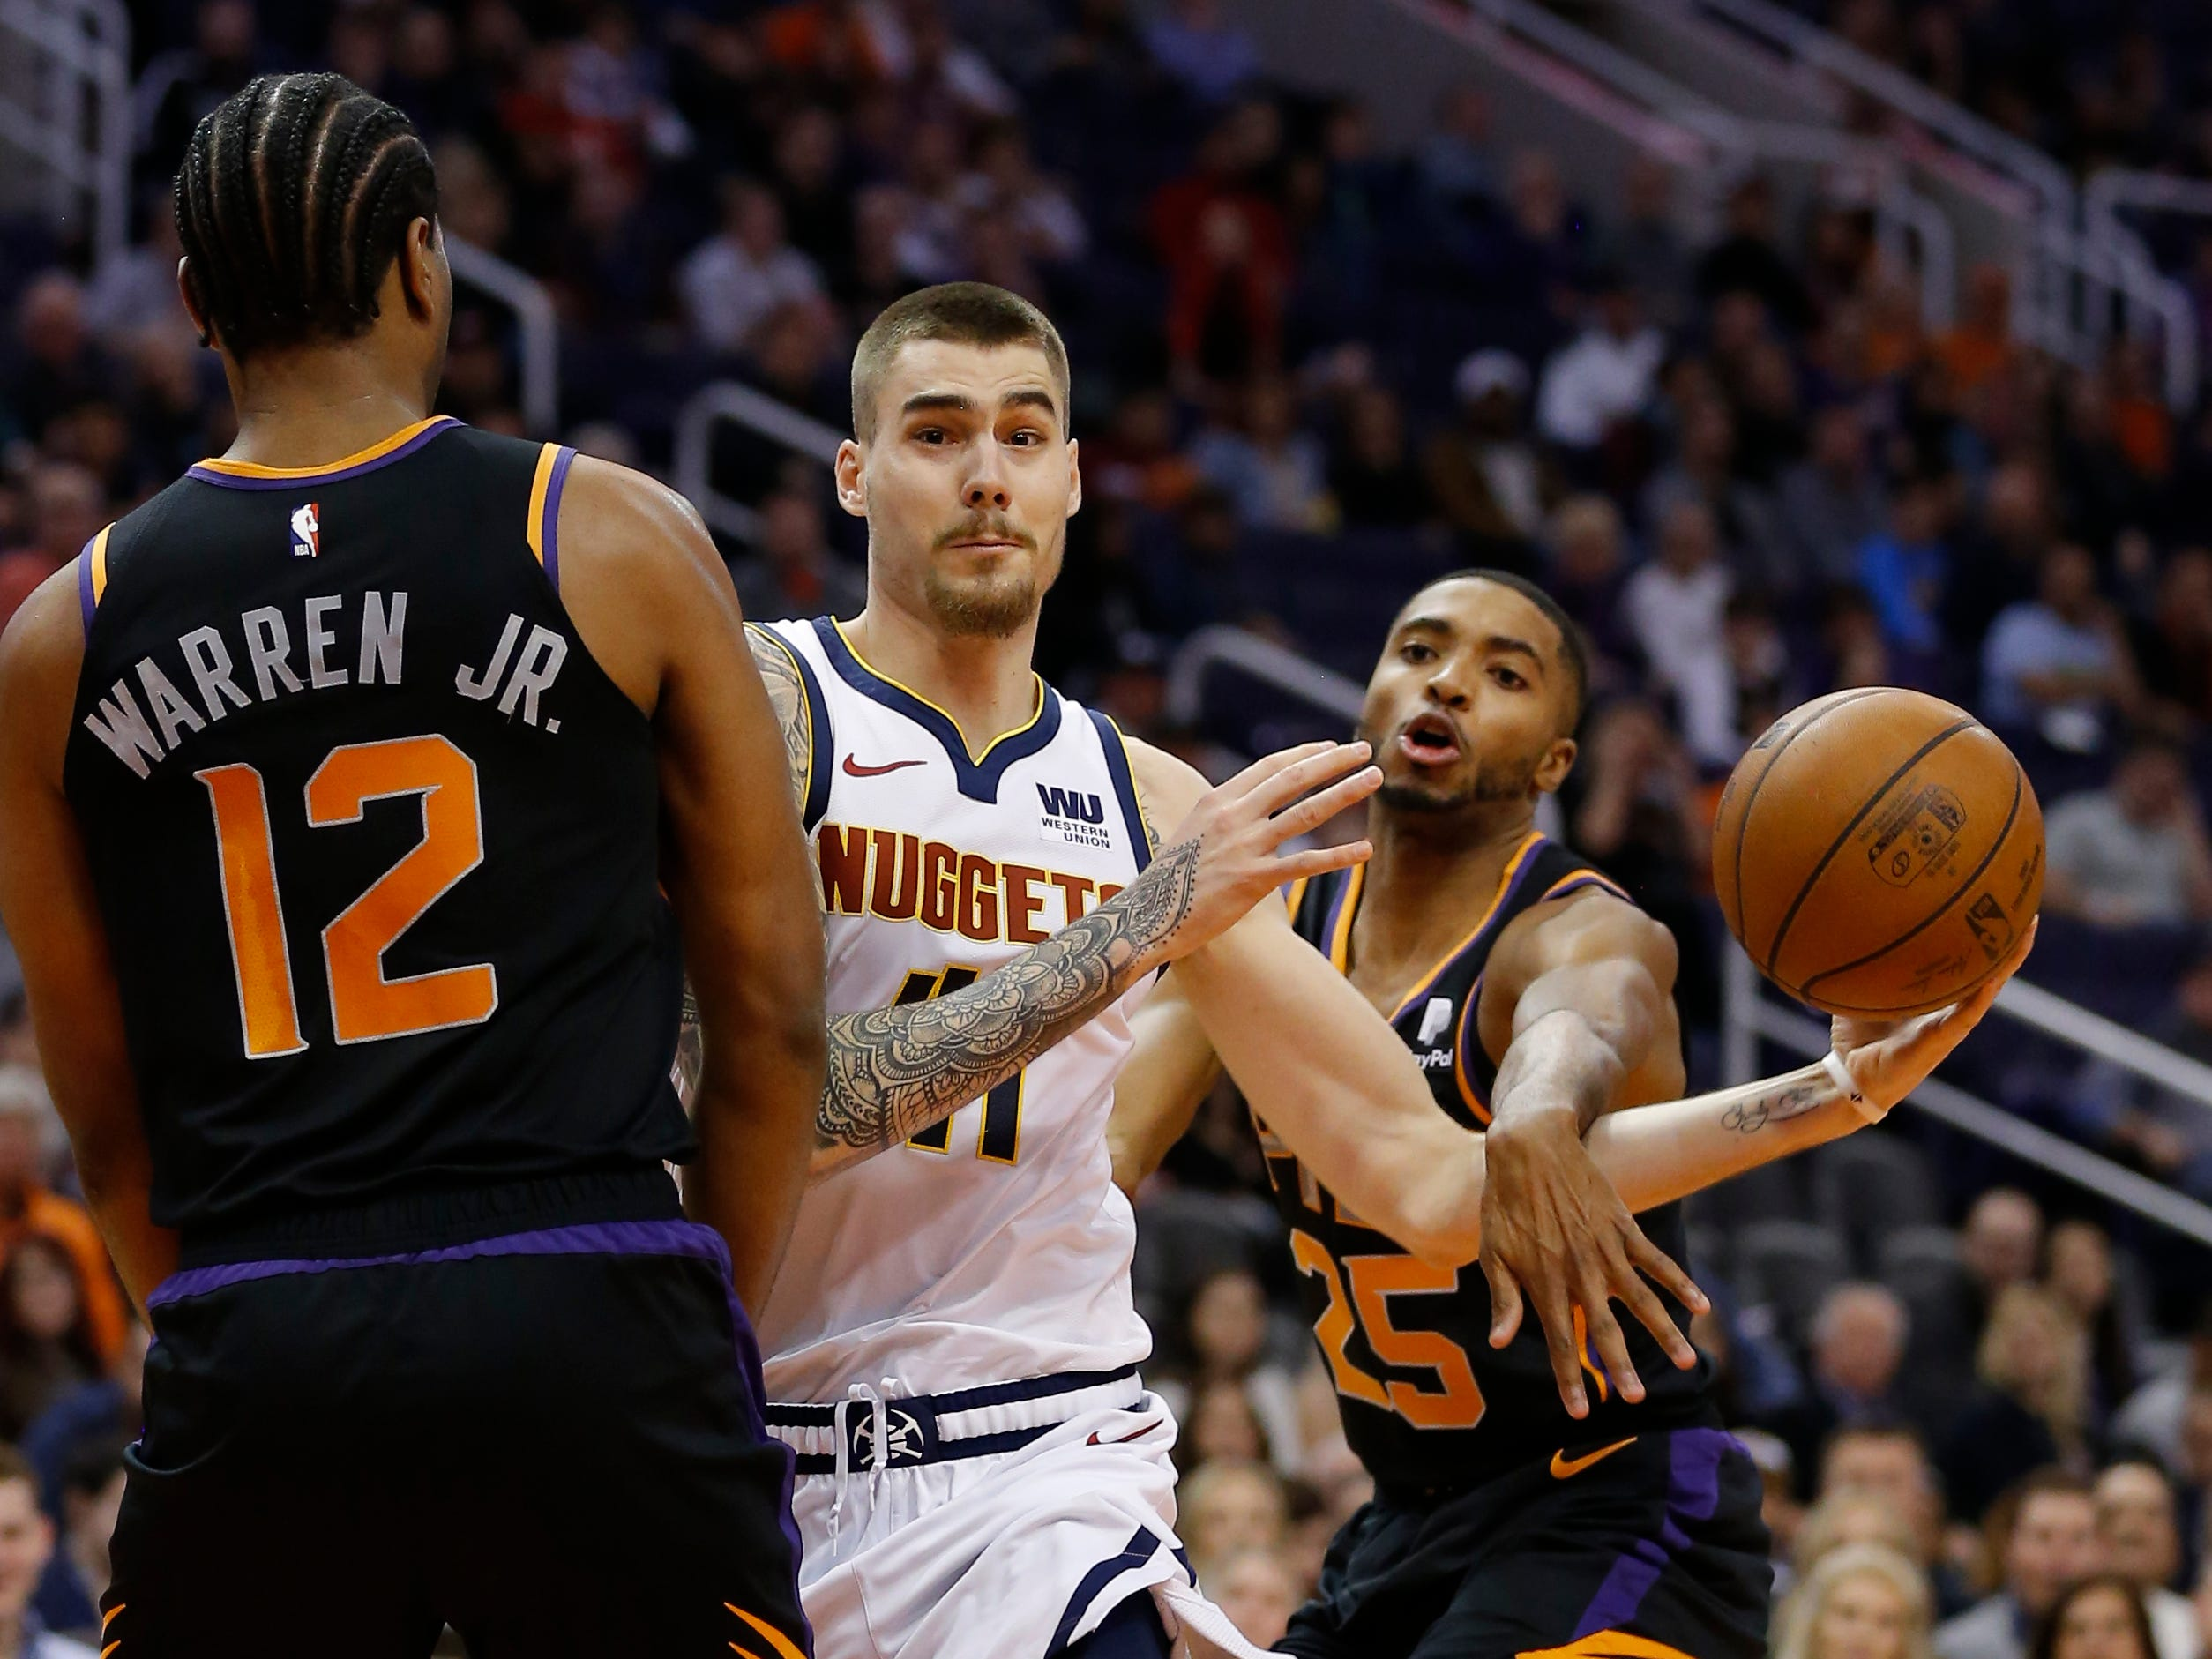 Denver Nuggets forward Juan Hernangomez (41) gets fouled while driving between Phoenix Suns forward T.J. Warren (12) and Mikal Bridges (25), Saturday, Jan. 12, 2019, in Phoenix. (AP Photo/Rick Scuteri)